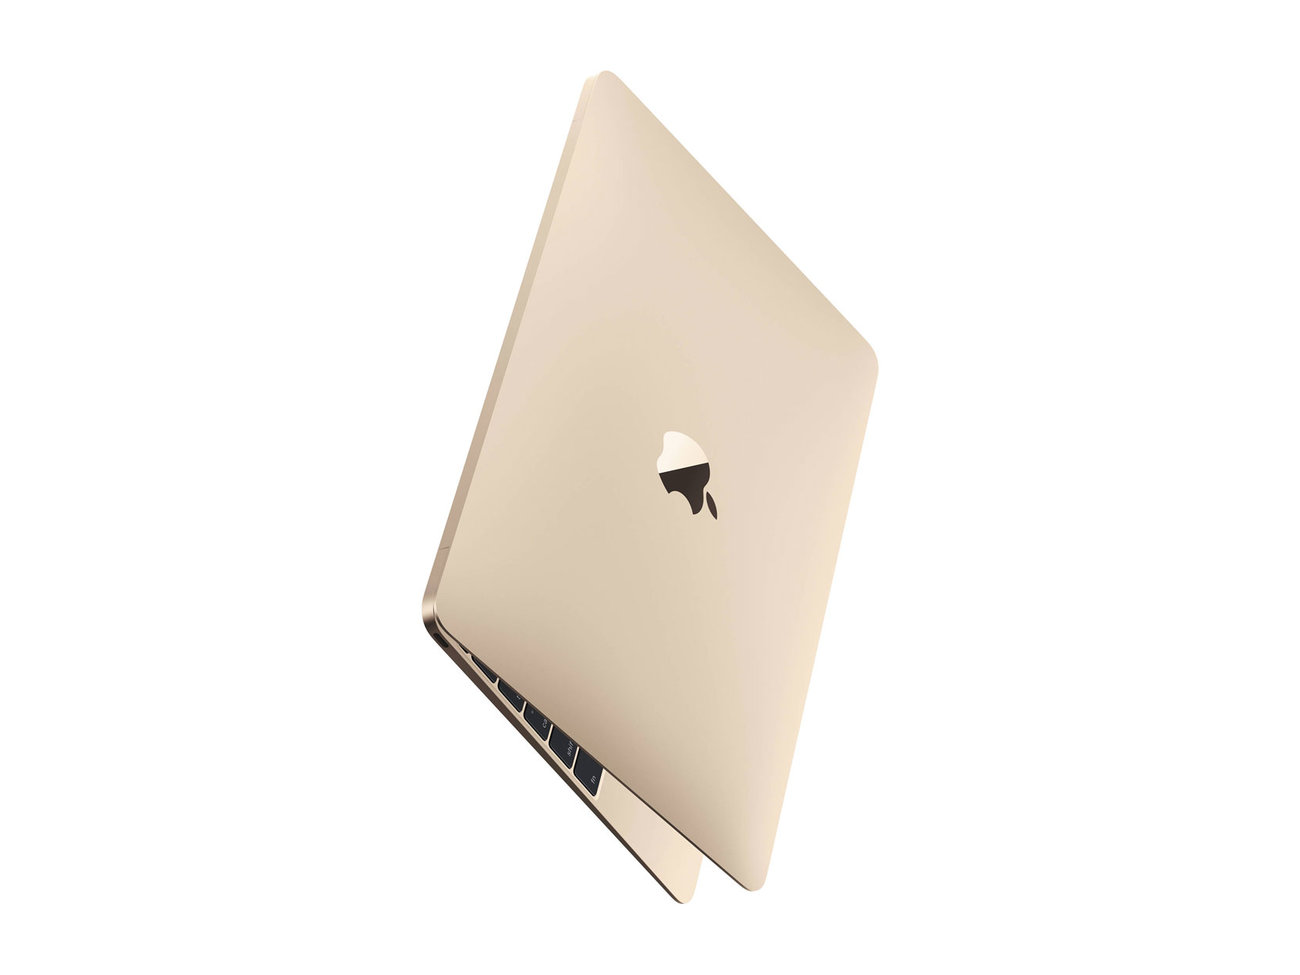 Tech-gold-macbook-pro-GG1115.jpg